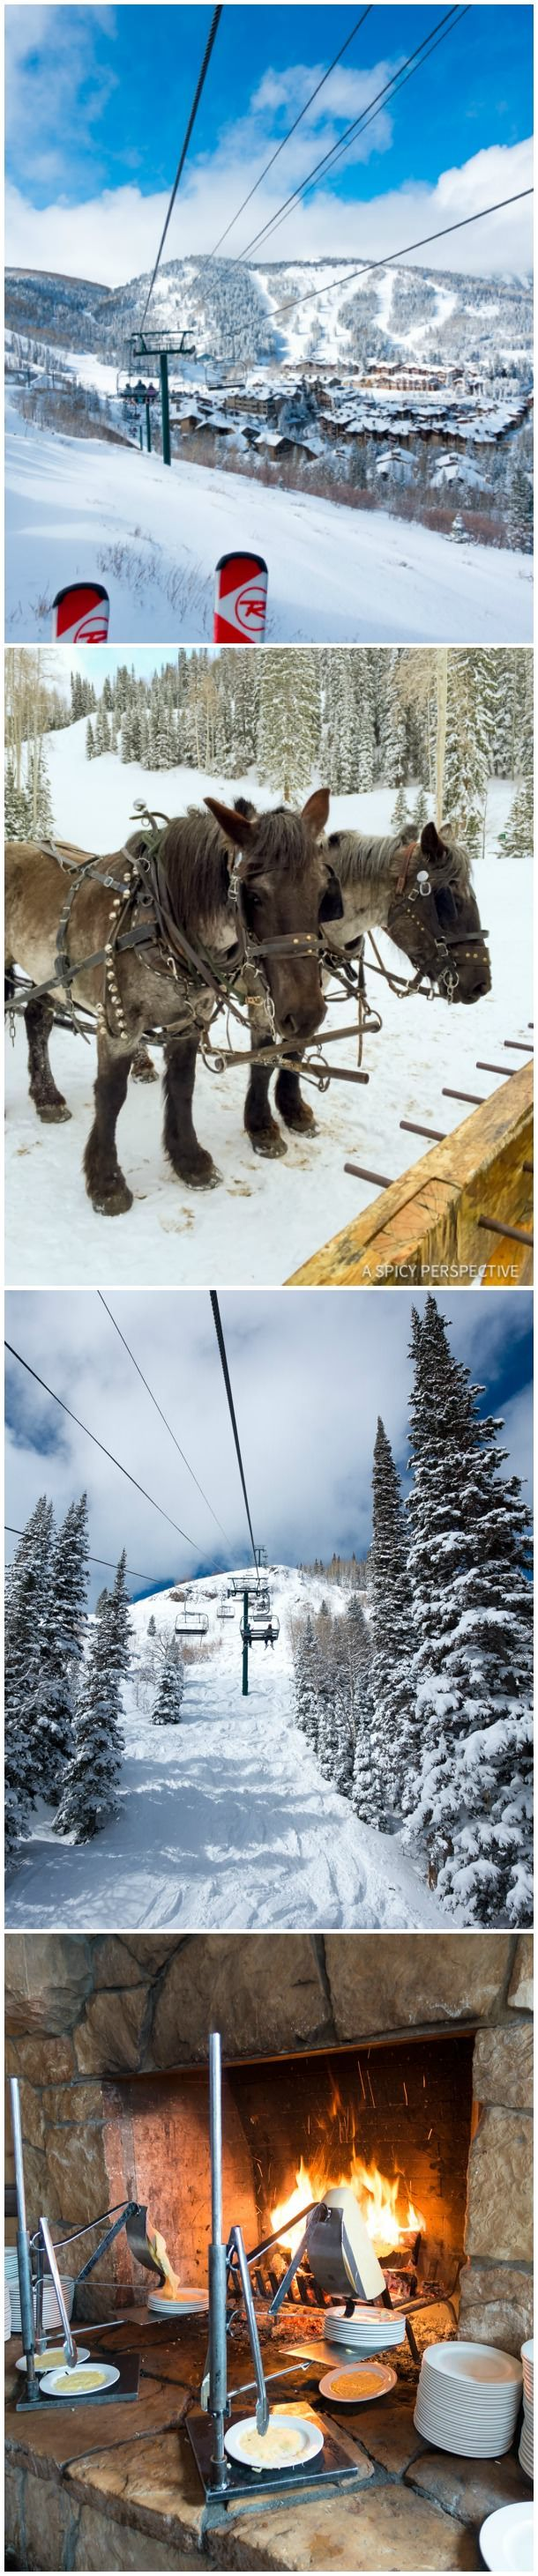 Why You Should Ski At Deer Valley Ski Resort #giveaway #deervalleyskiresort #sp